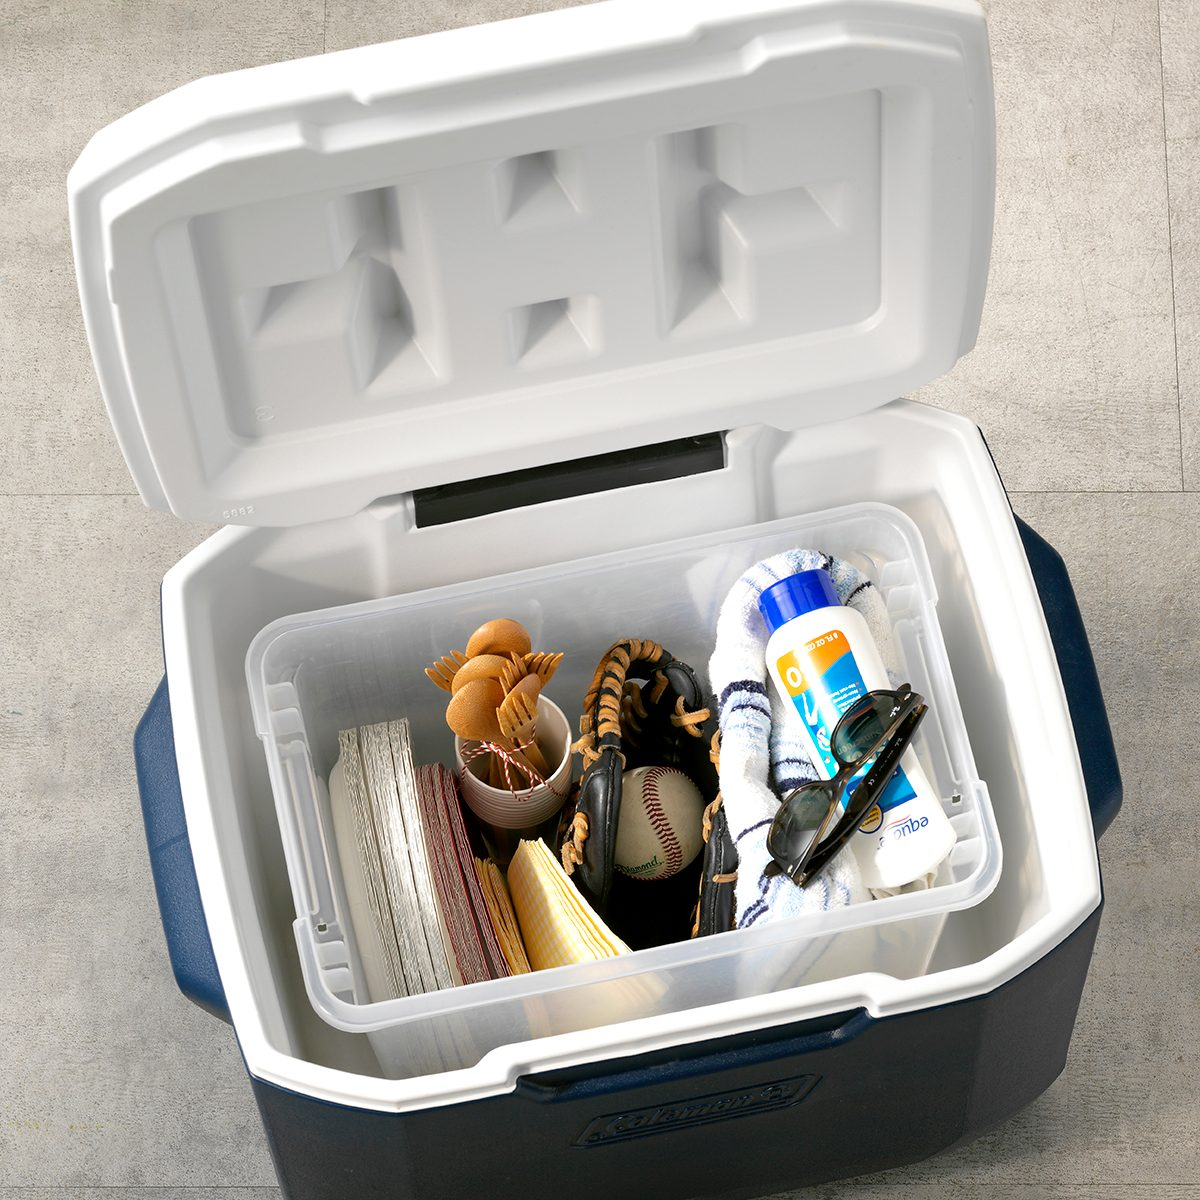 THGKH19, Kitchen Hack Storing tailgate essentials